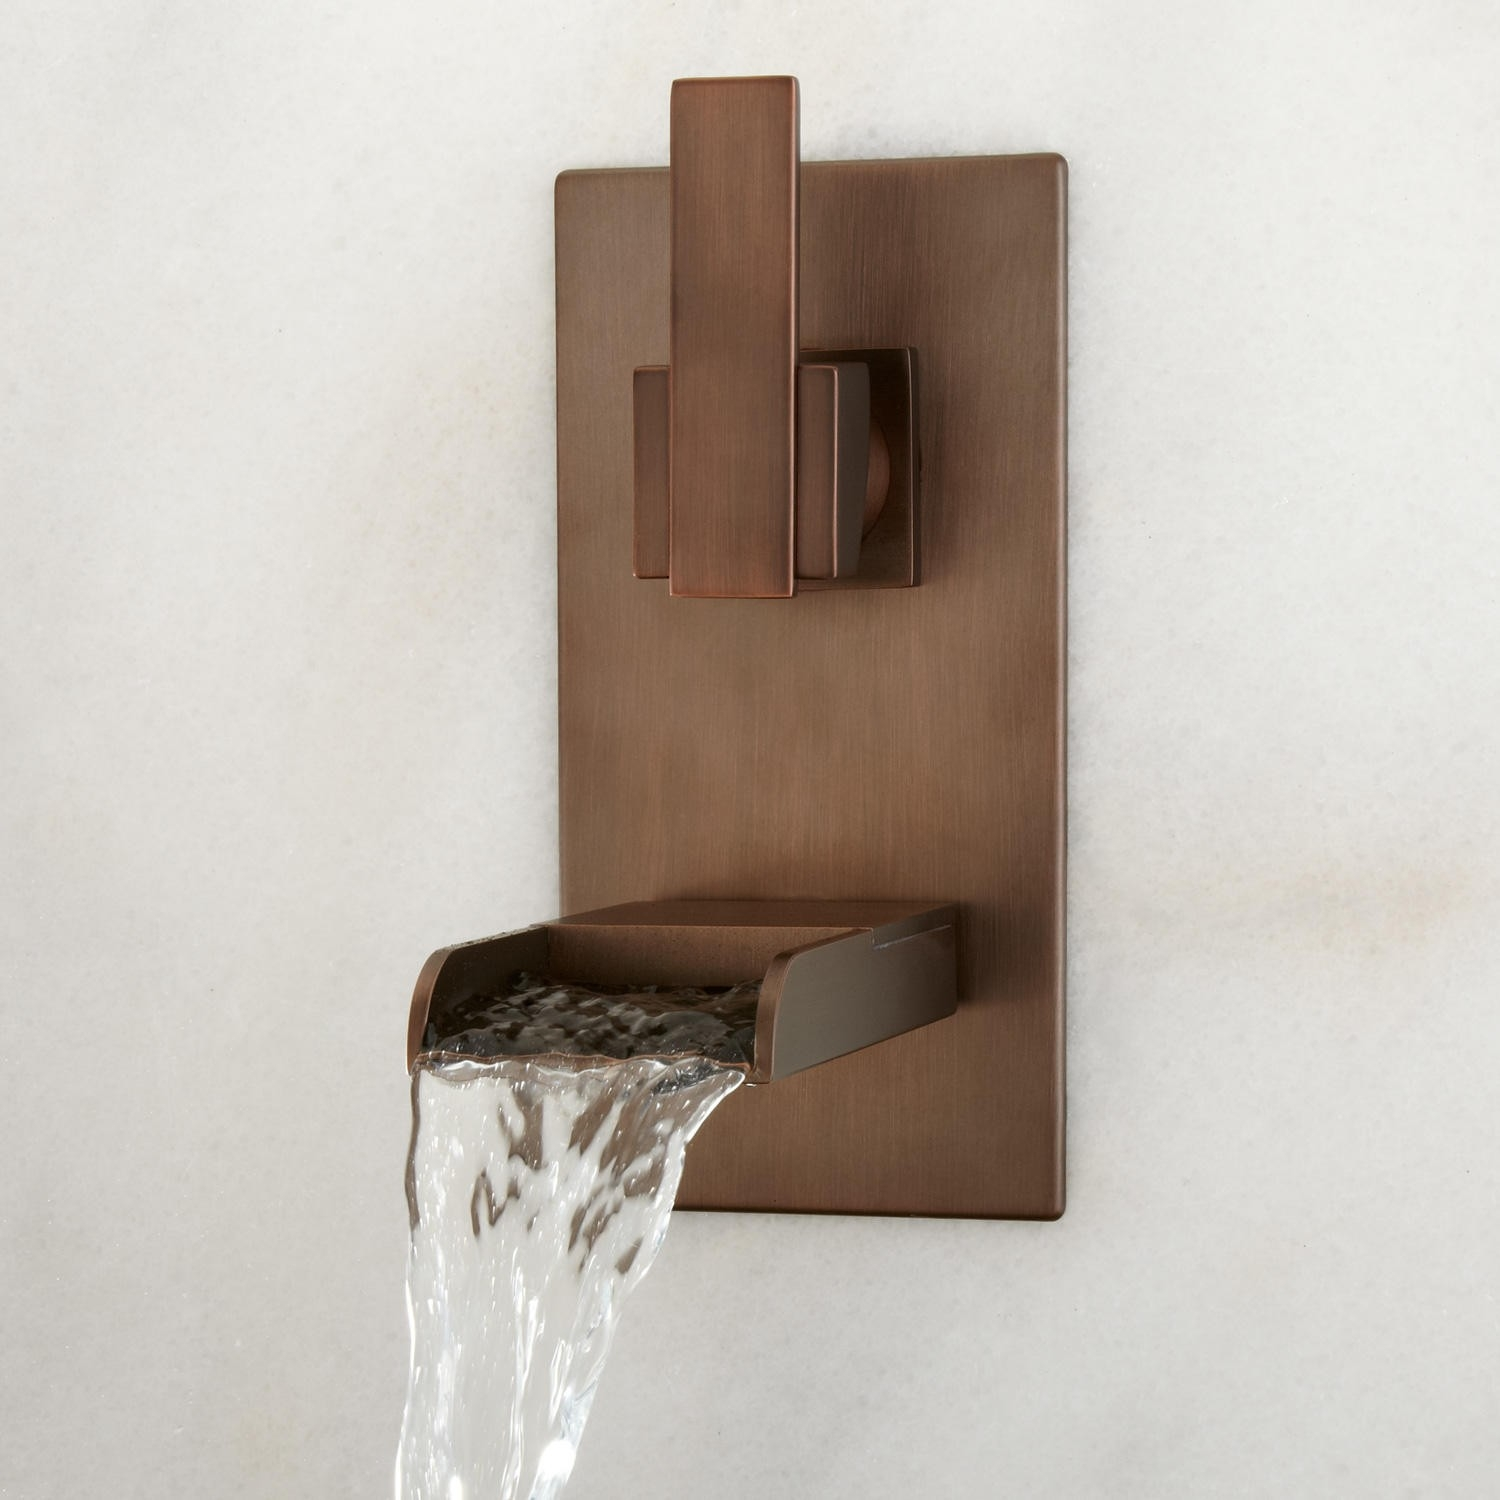 Ideas, willis wall mount bathroom waterfall faucet bathroom throughout measurements 1500 x 1500  .